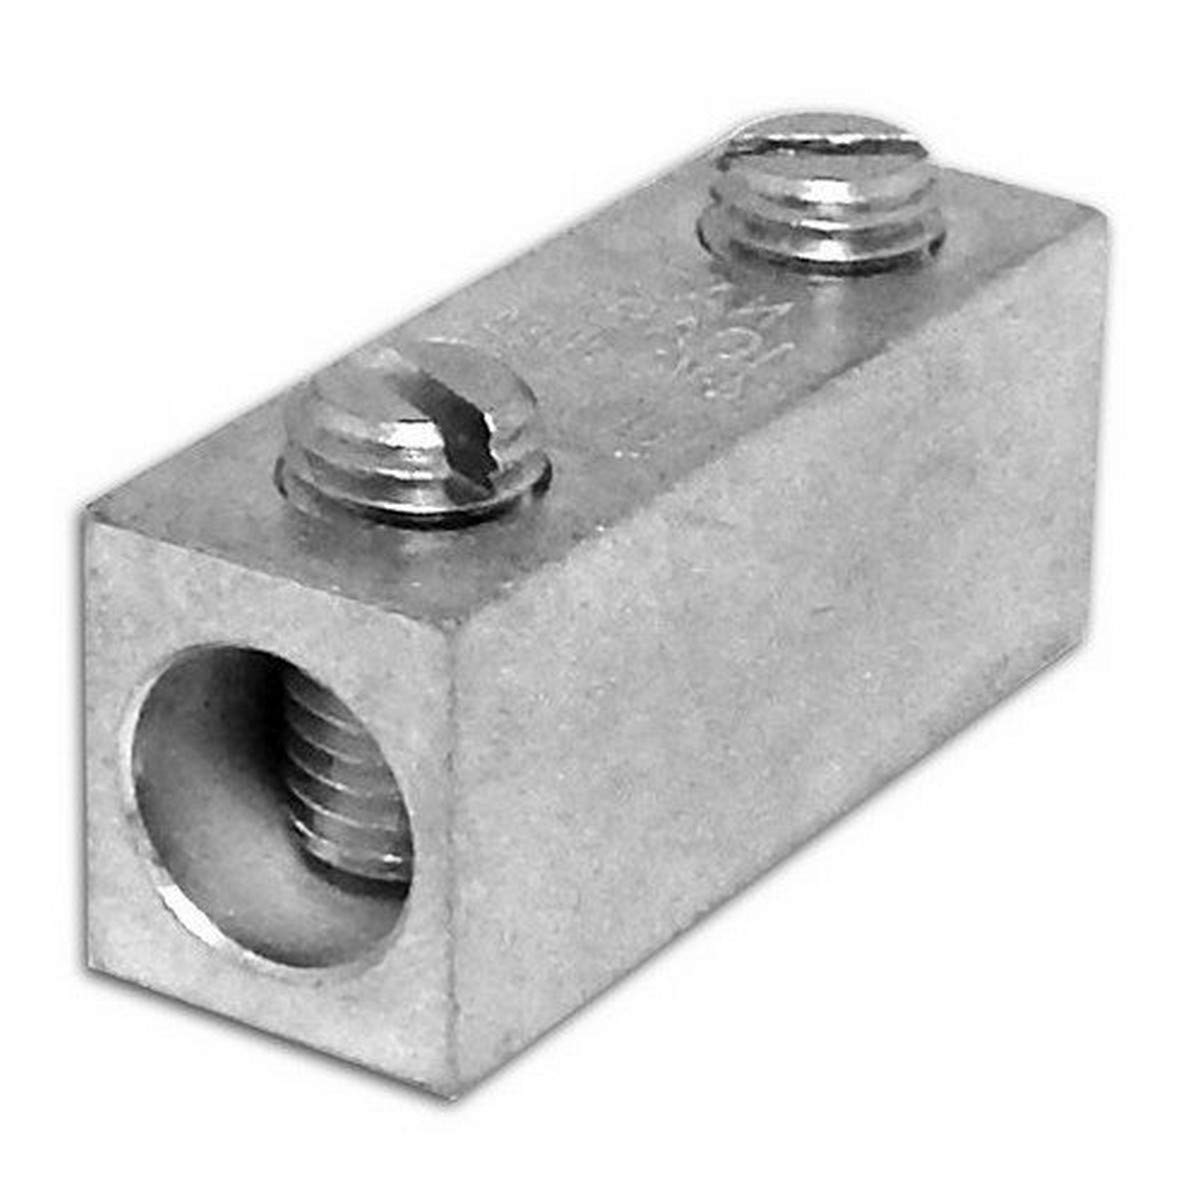 1 Hole Compression Connector Type 1//4 Stud Size 2 Awg Wire Range Morris 94221 Morris Products 94221 Long Barrel Compression Lug Copper